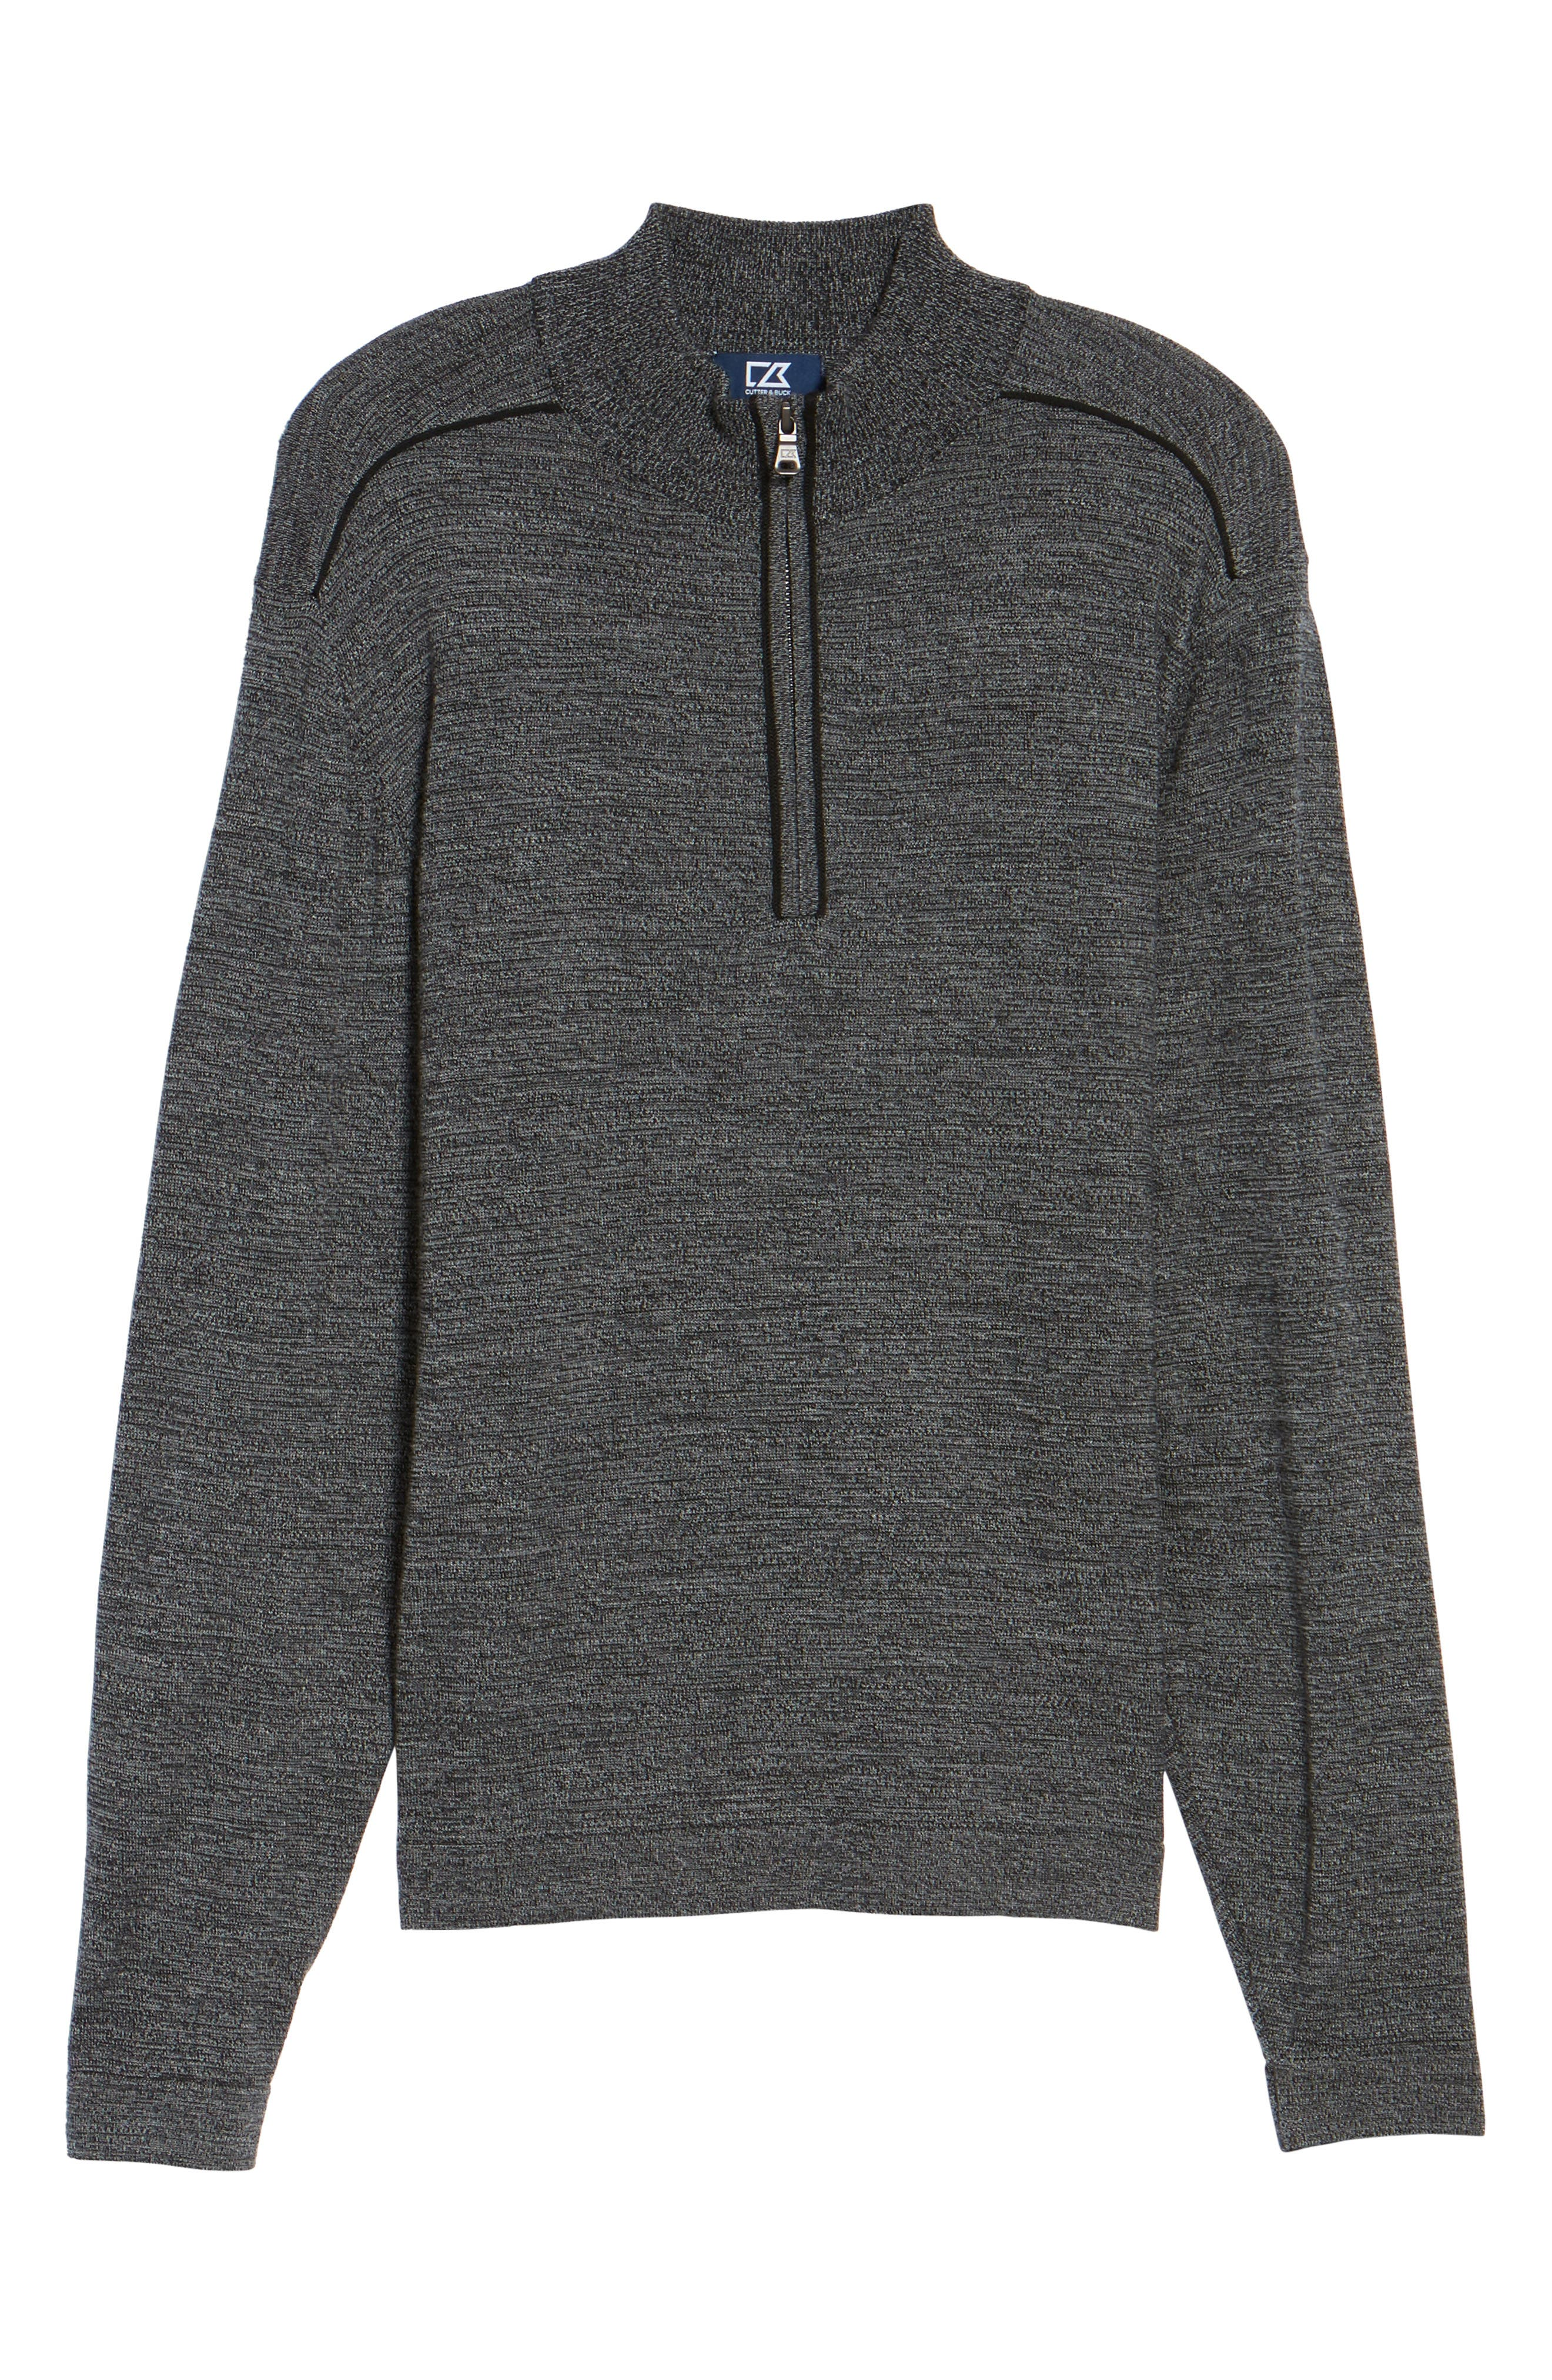 Henry Quarter-Zip Pullover Sweater,                             Alternate thumbnail 6, color,                             001